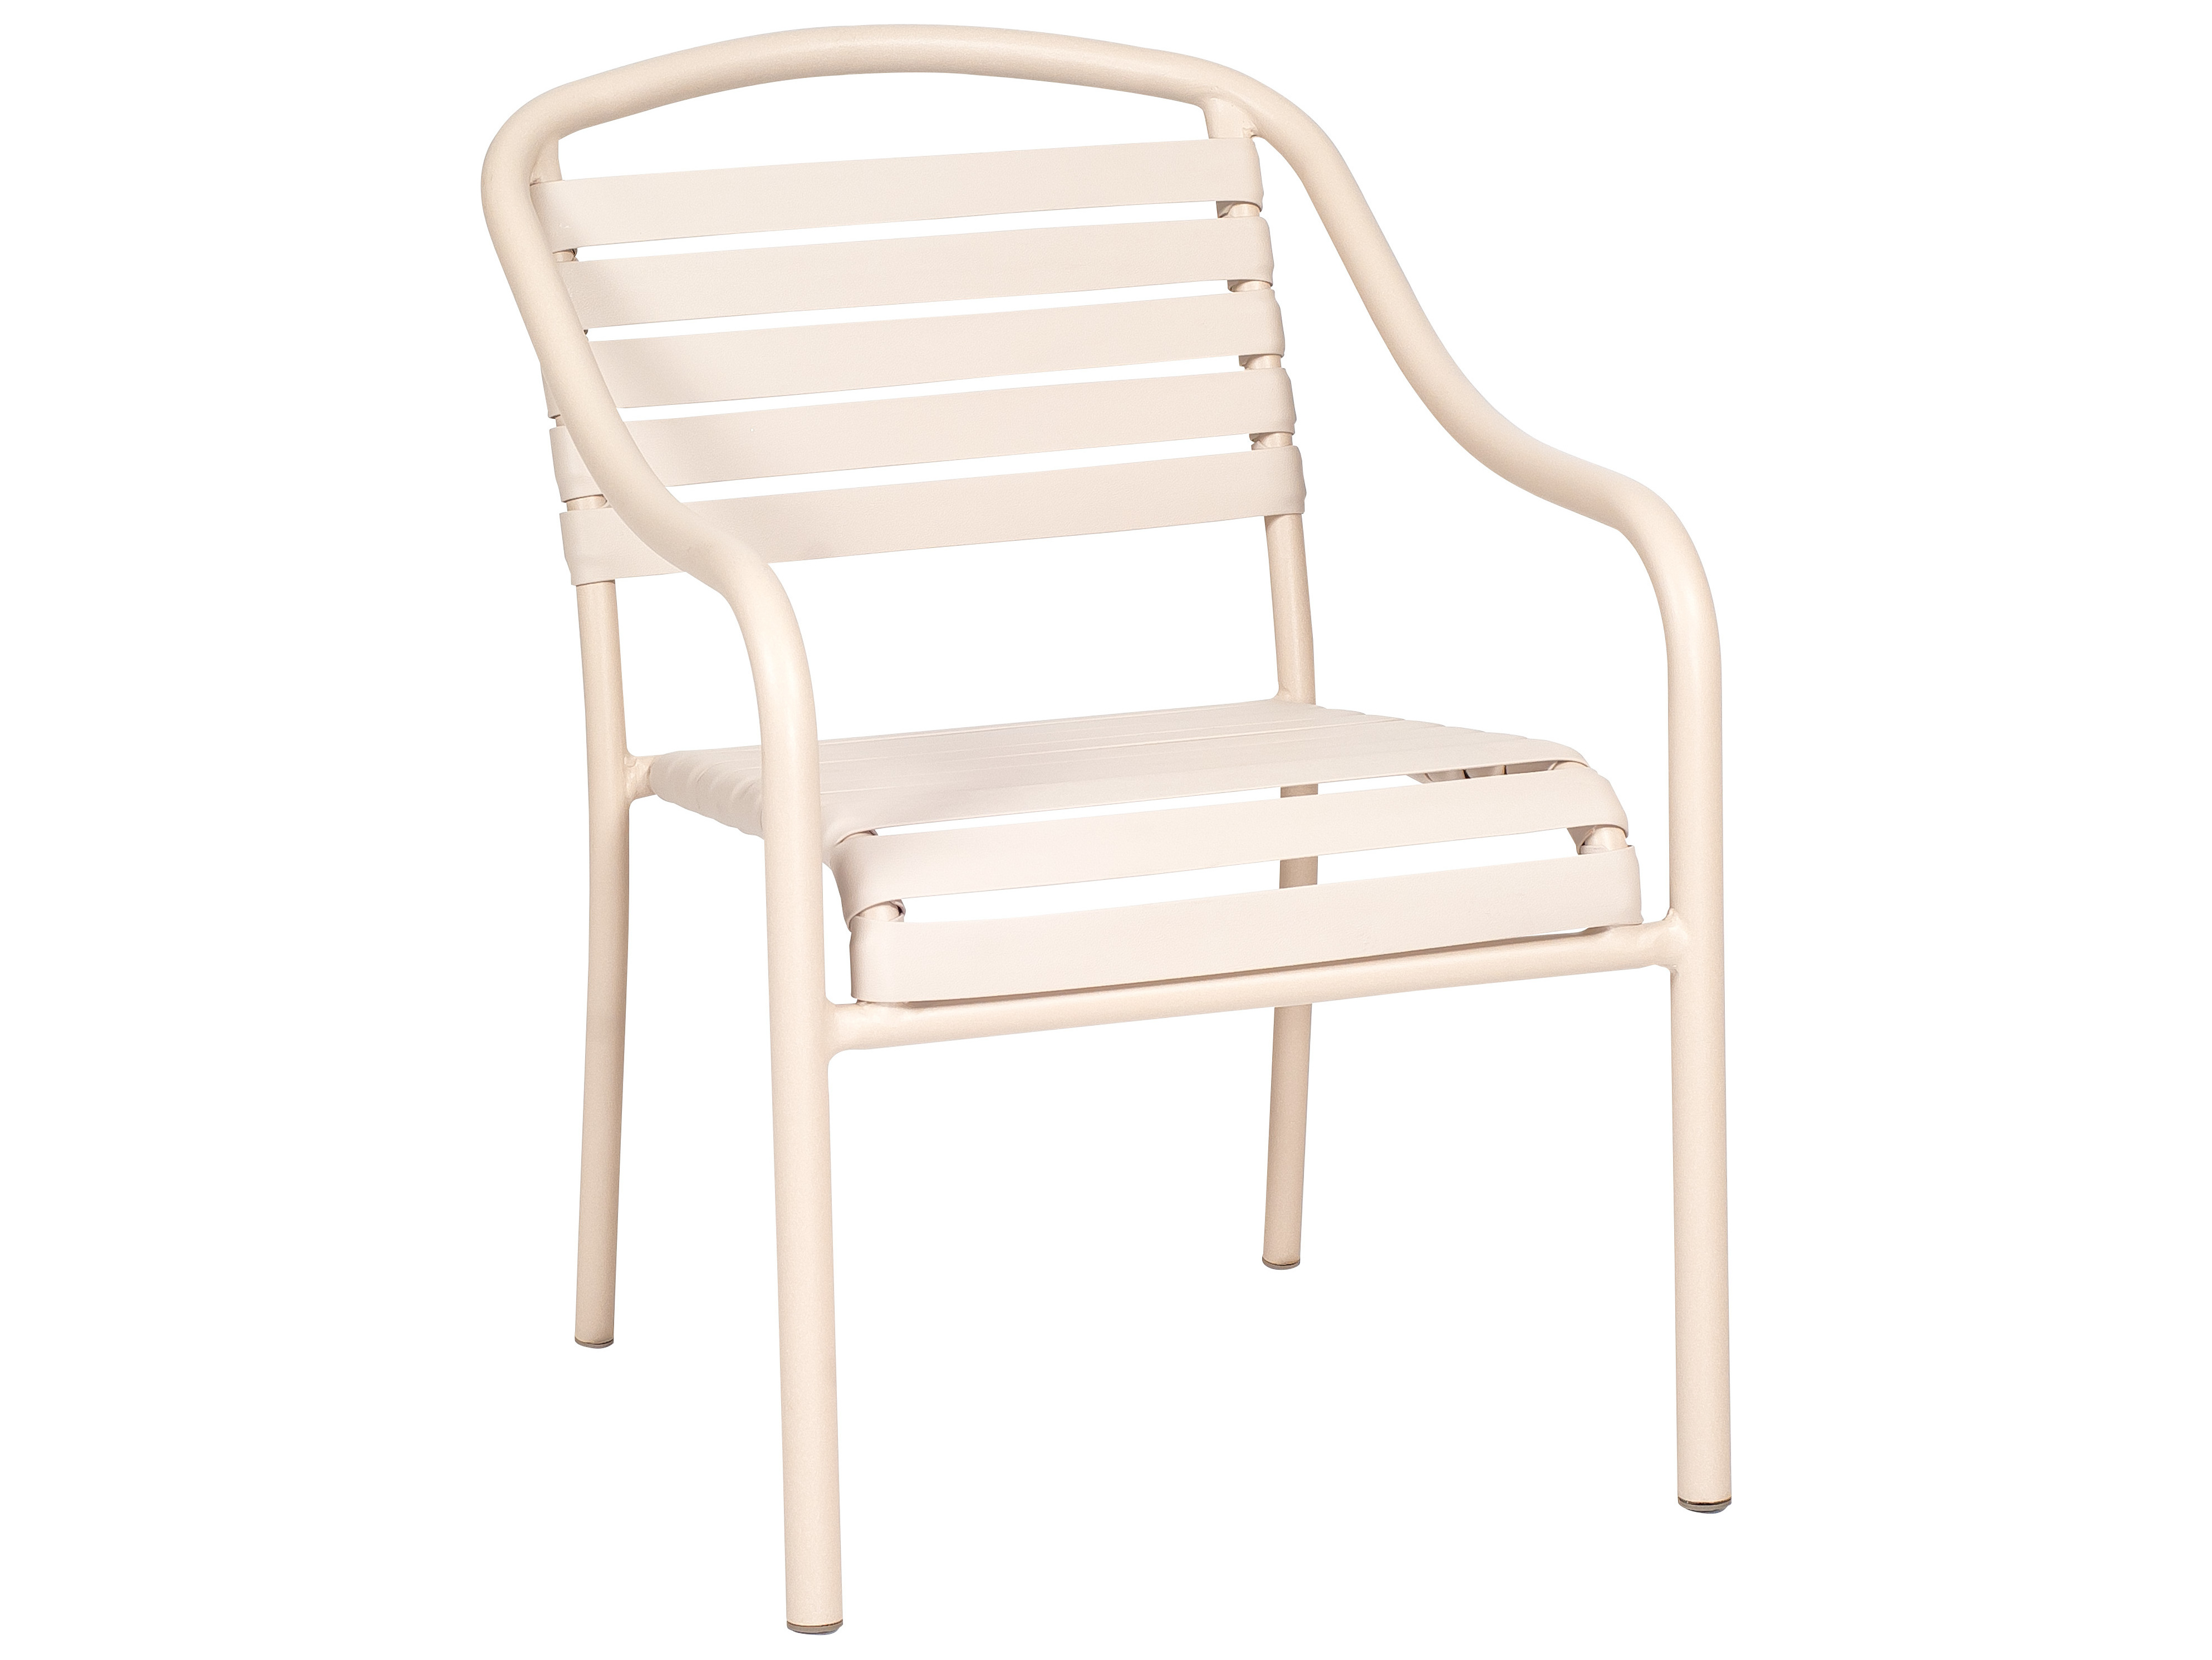 baja beach chairs how to make chair covers for dining woodard strap aluminum stackable arm